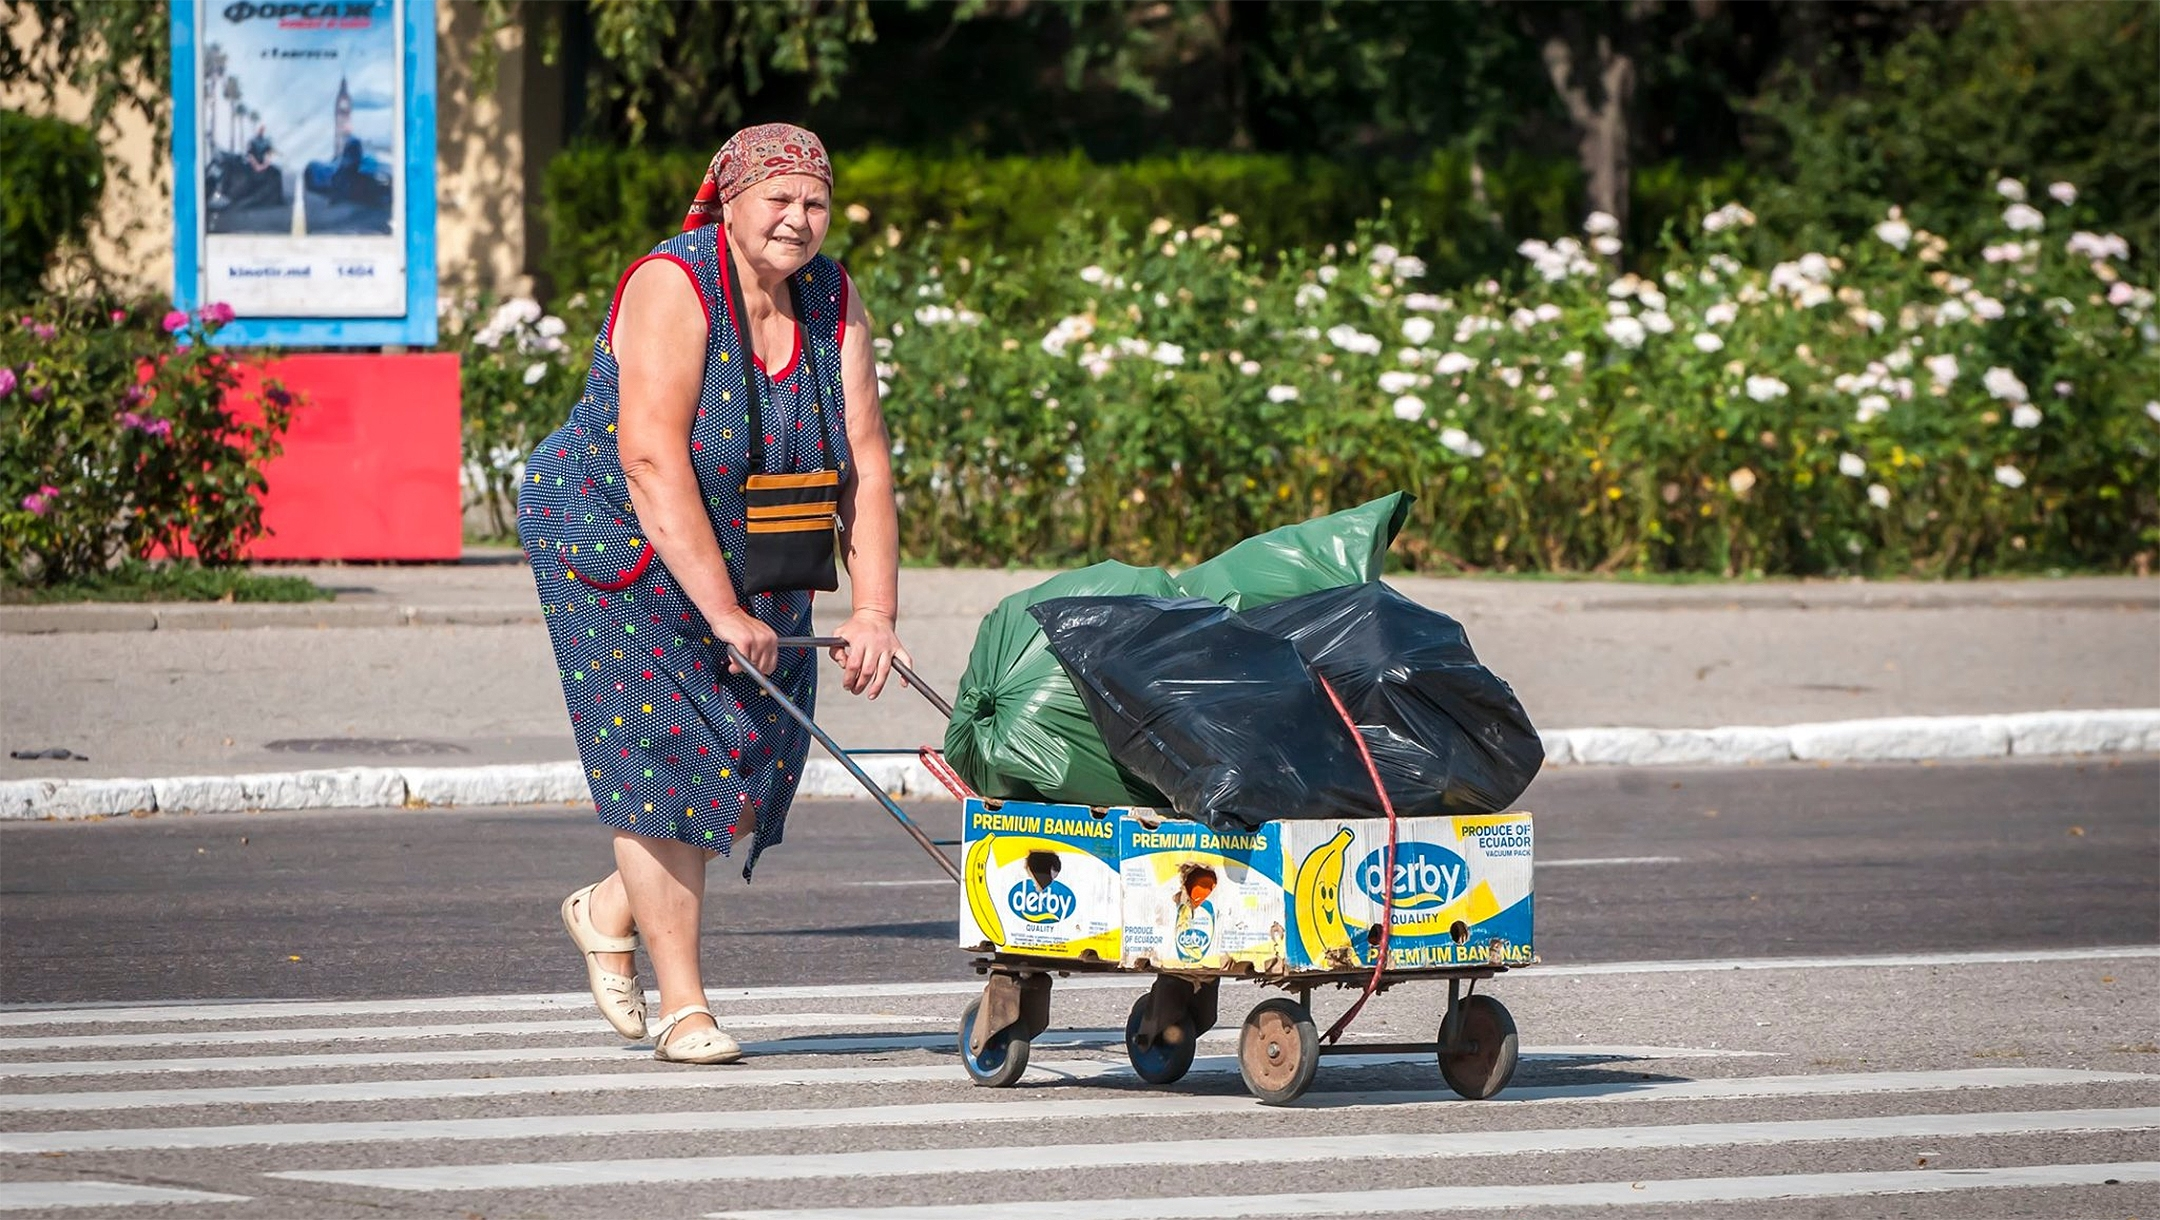 A woman crossing the road in Tiraspol, Transnistria on Aug. 24, 2019. (Courtesy of Roman Yanushevsky/Channel 9)